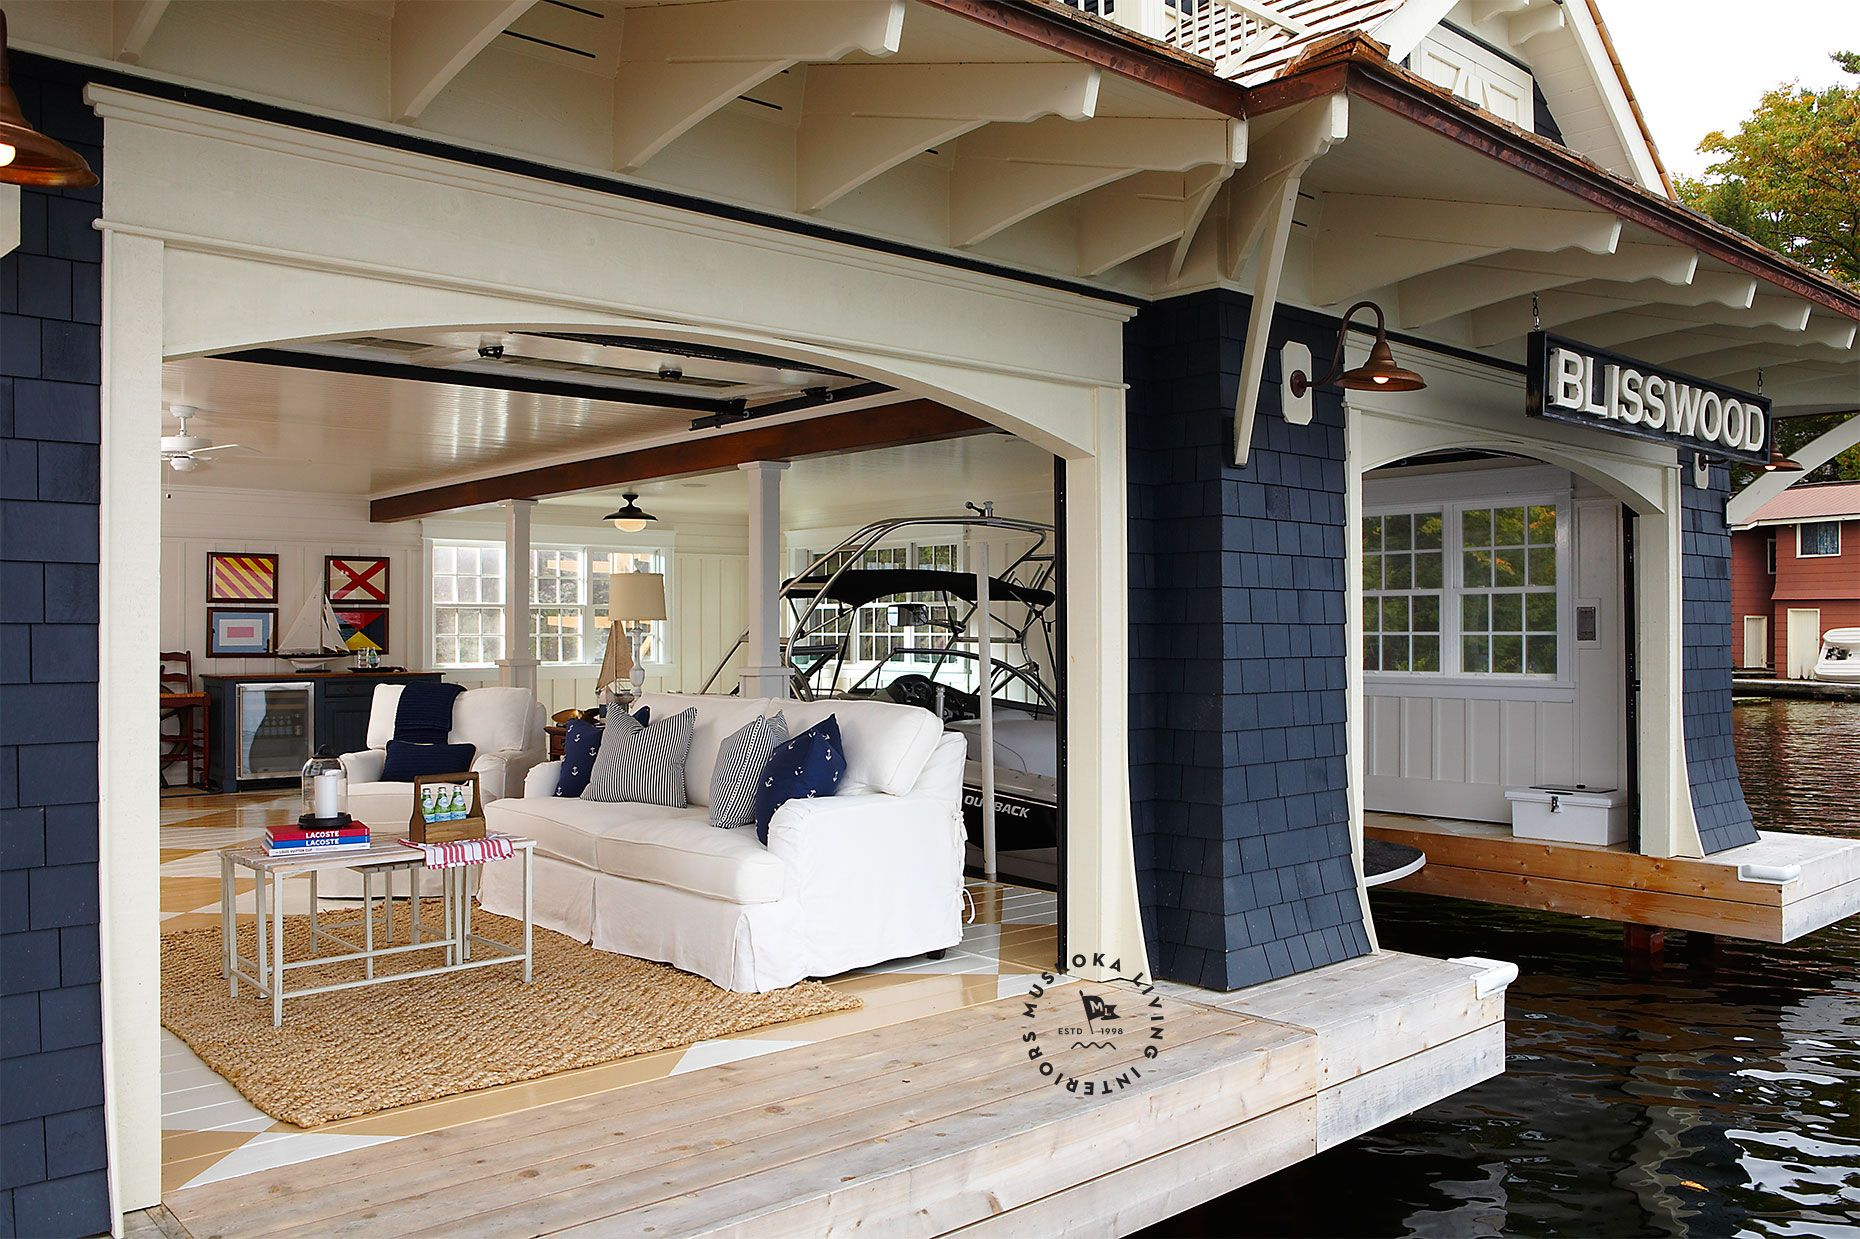 Coastal muskoka living interior design ideas home bunch interior - Boat House Interior By Muskoka Living Interiors